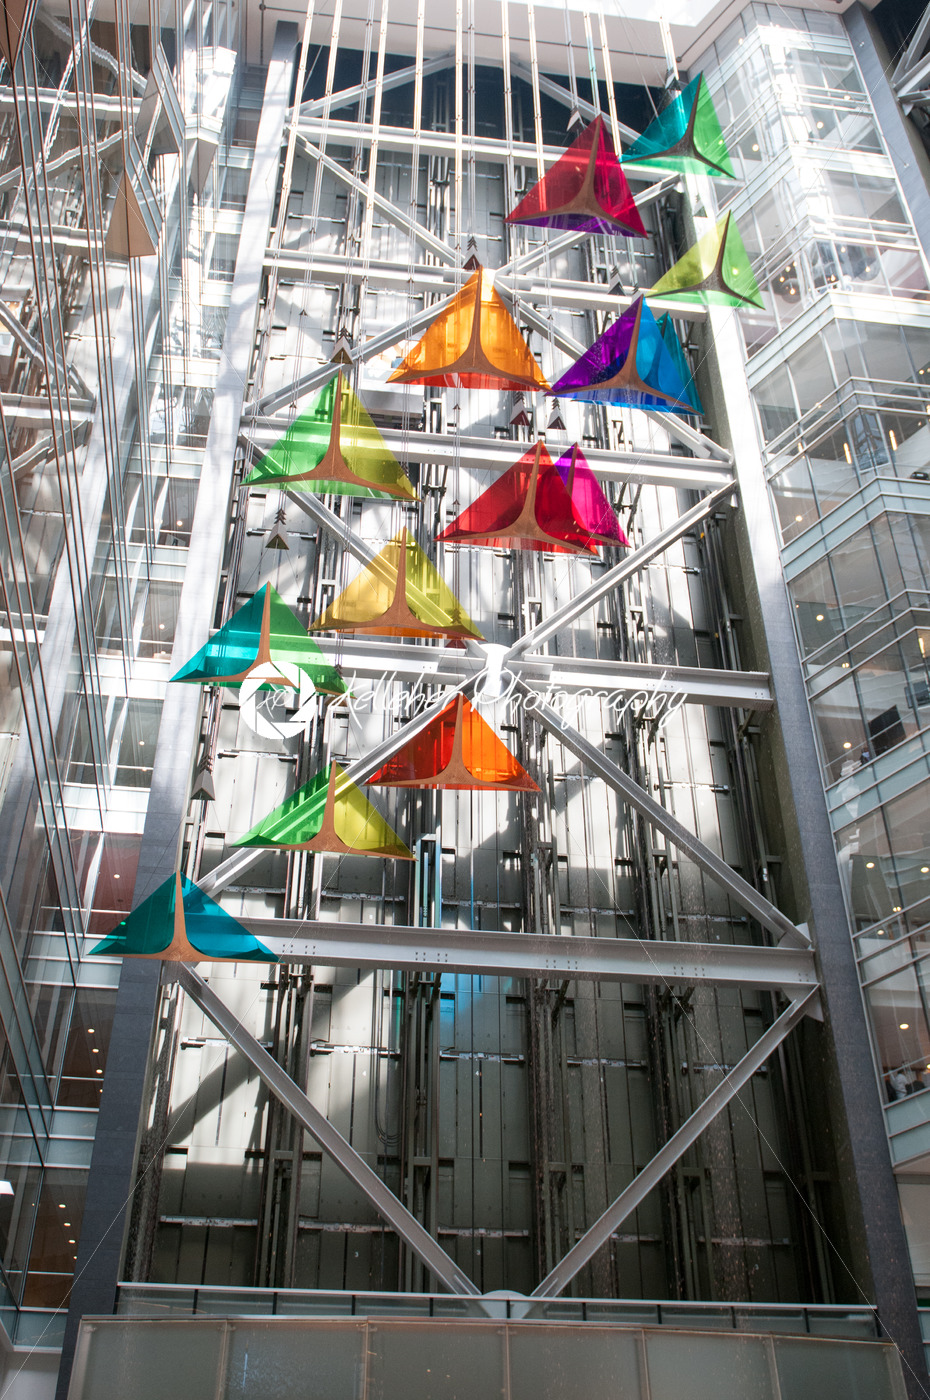 DETROIT, MI – MAY 8: Looking from the ground at one of Detroit's new office buildings, One Campus Martius, Headquaters of Compuware and Quicken Loans. - Kelleher Photography Store